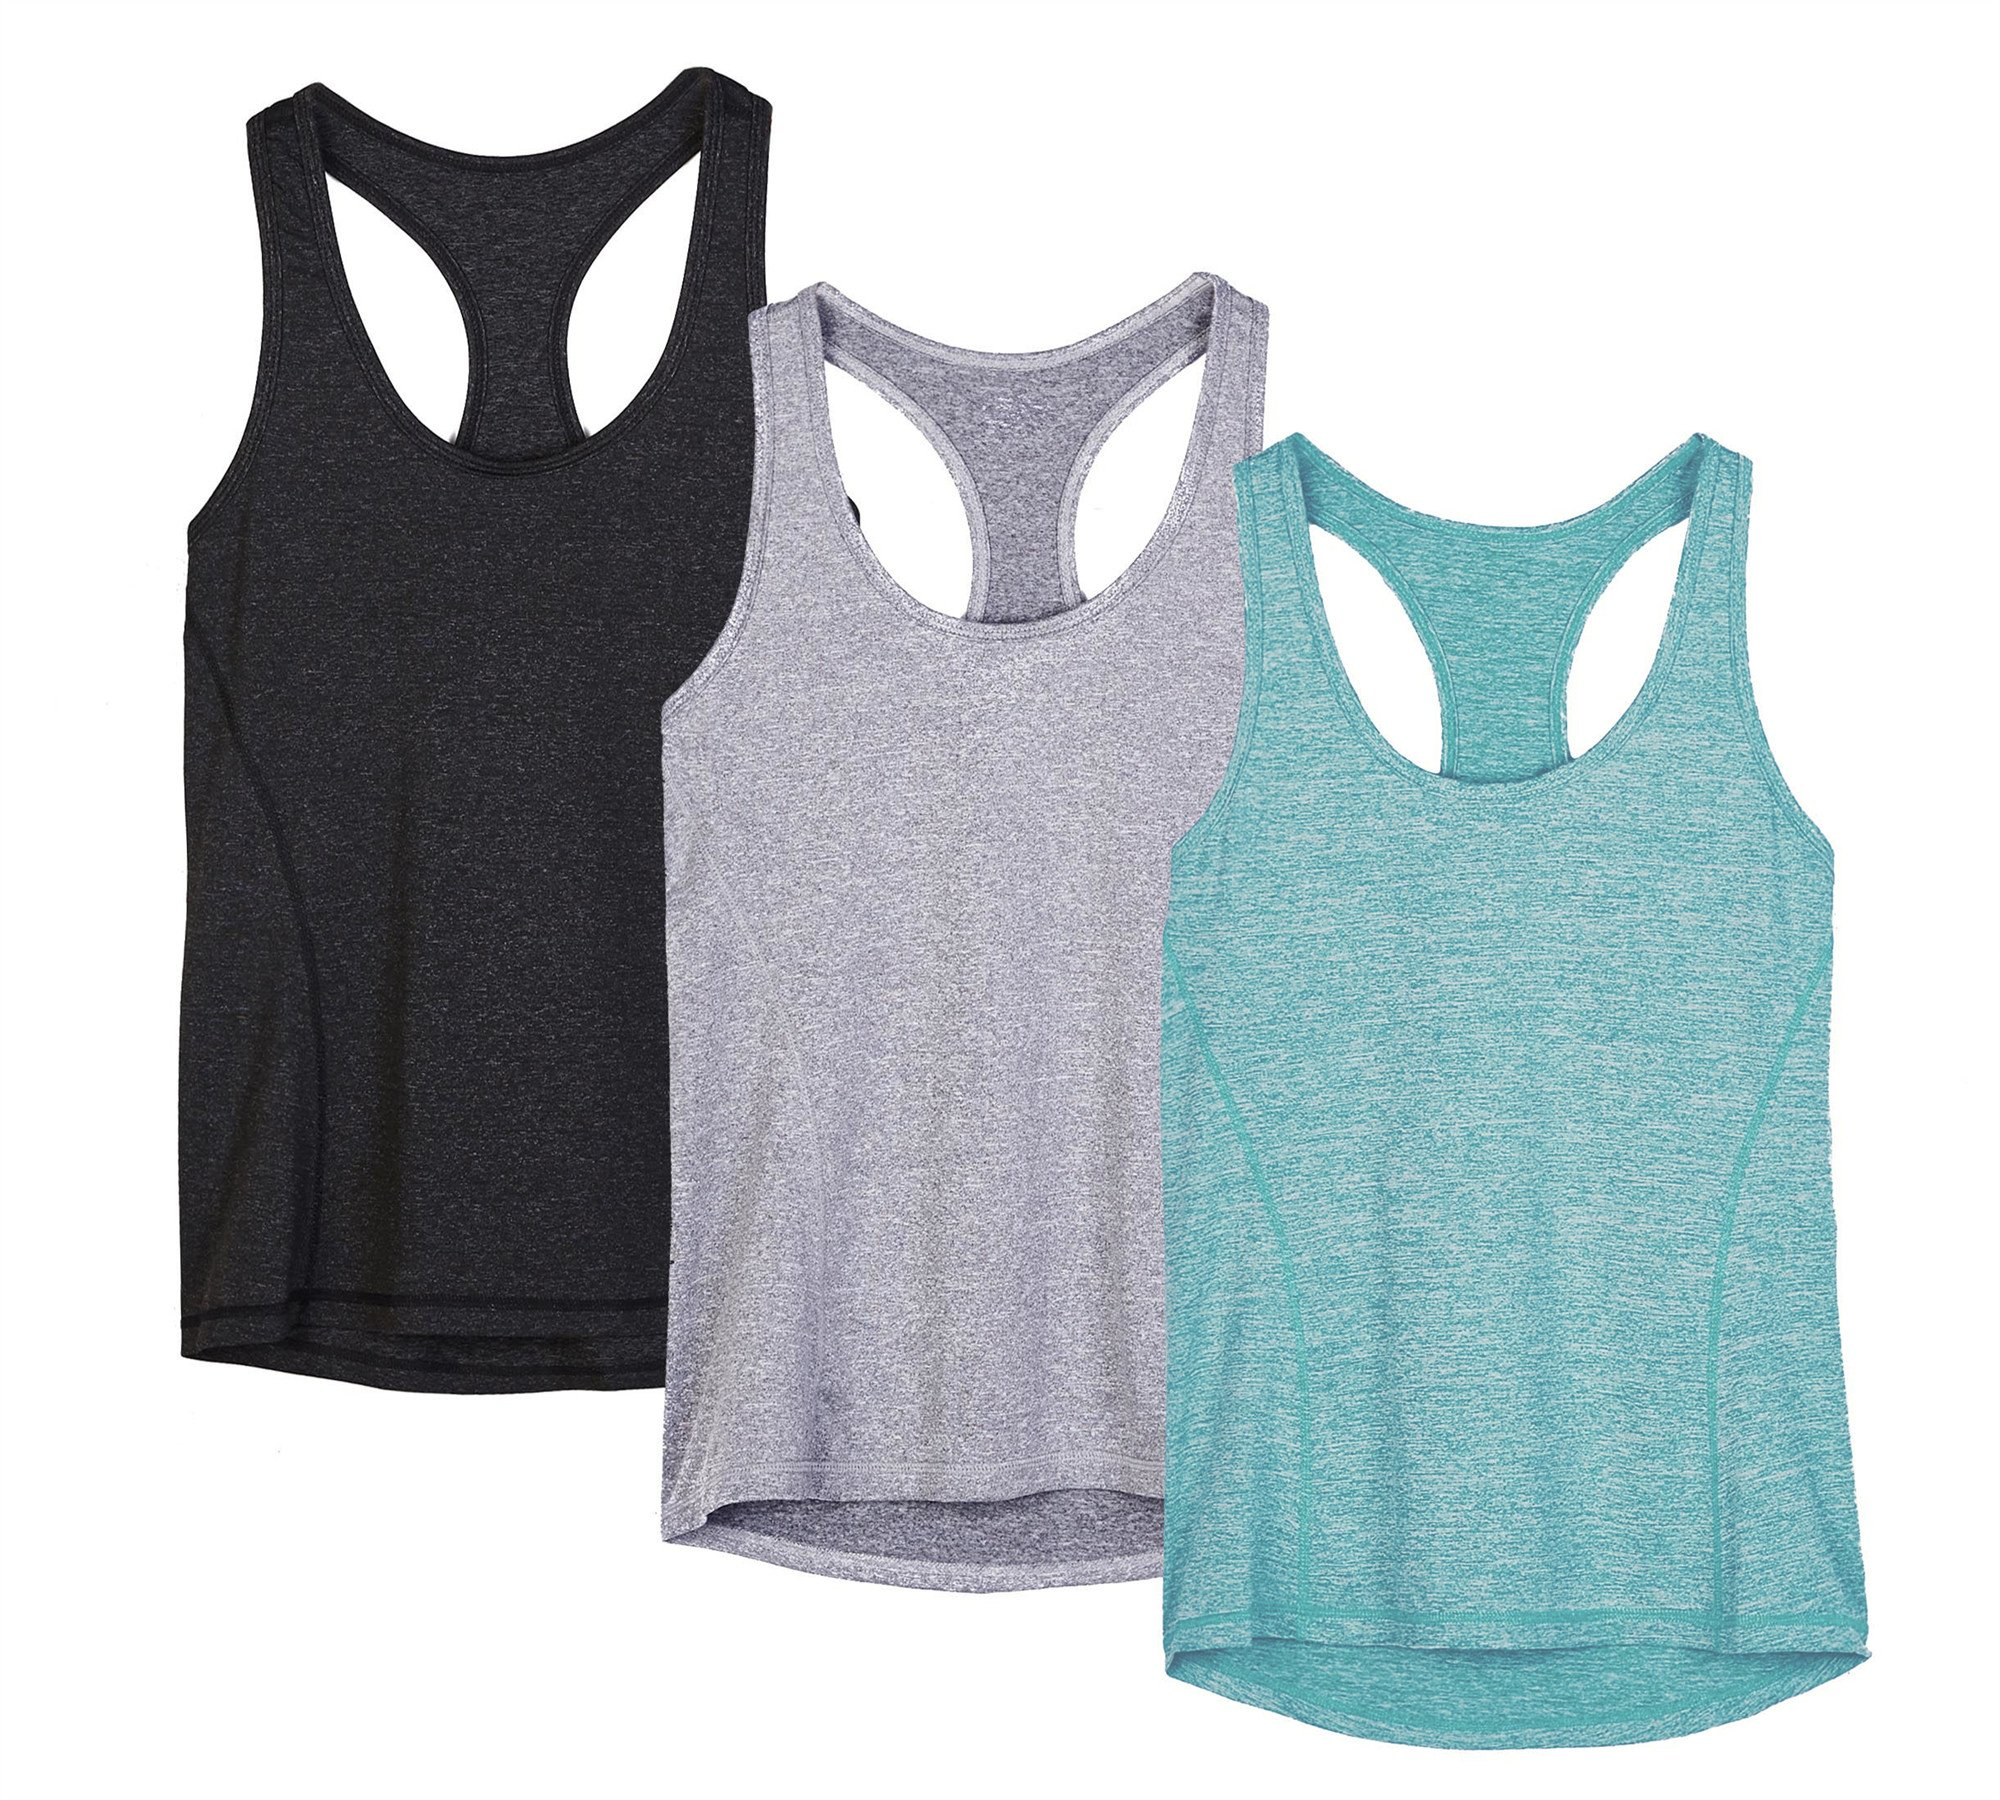 icyzone Workout Tank Tops for Women - Racerback Athletic Yoga Tops, Running Exercise Gym Shirts(Pack of 3)(M, Black/Granite/Green) by icyzone